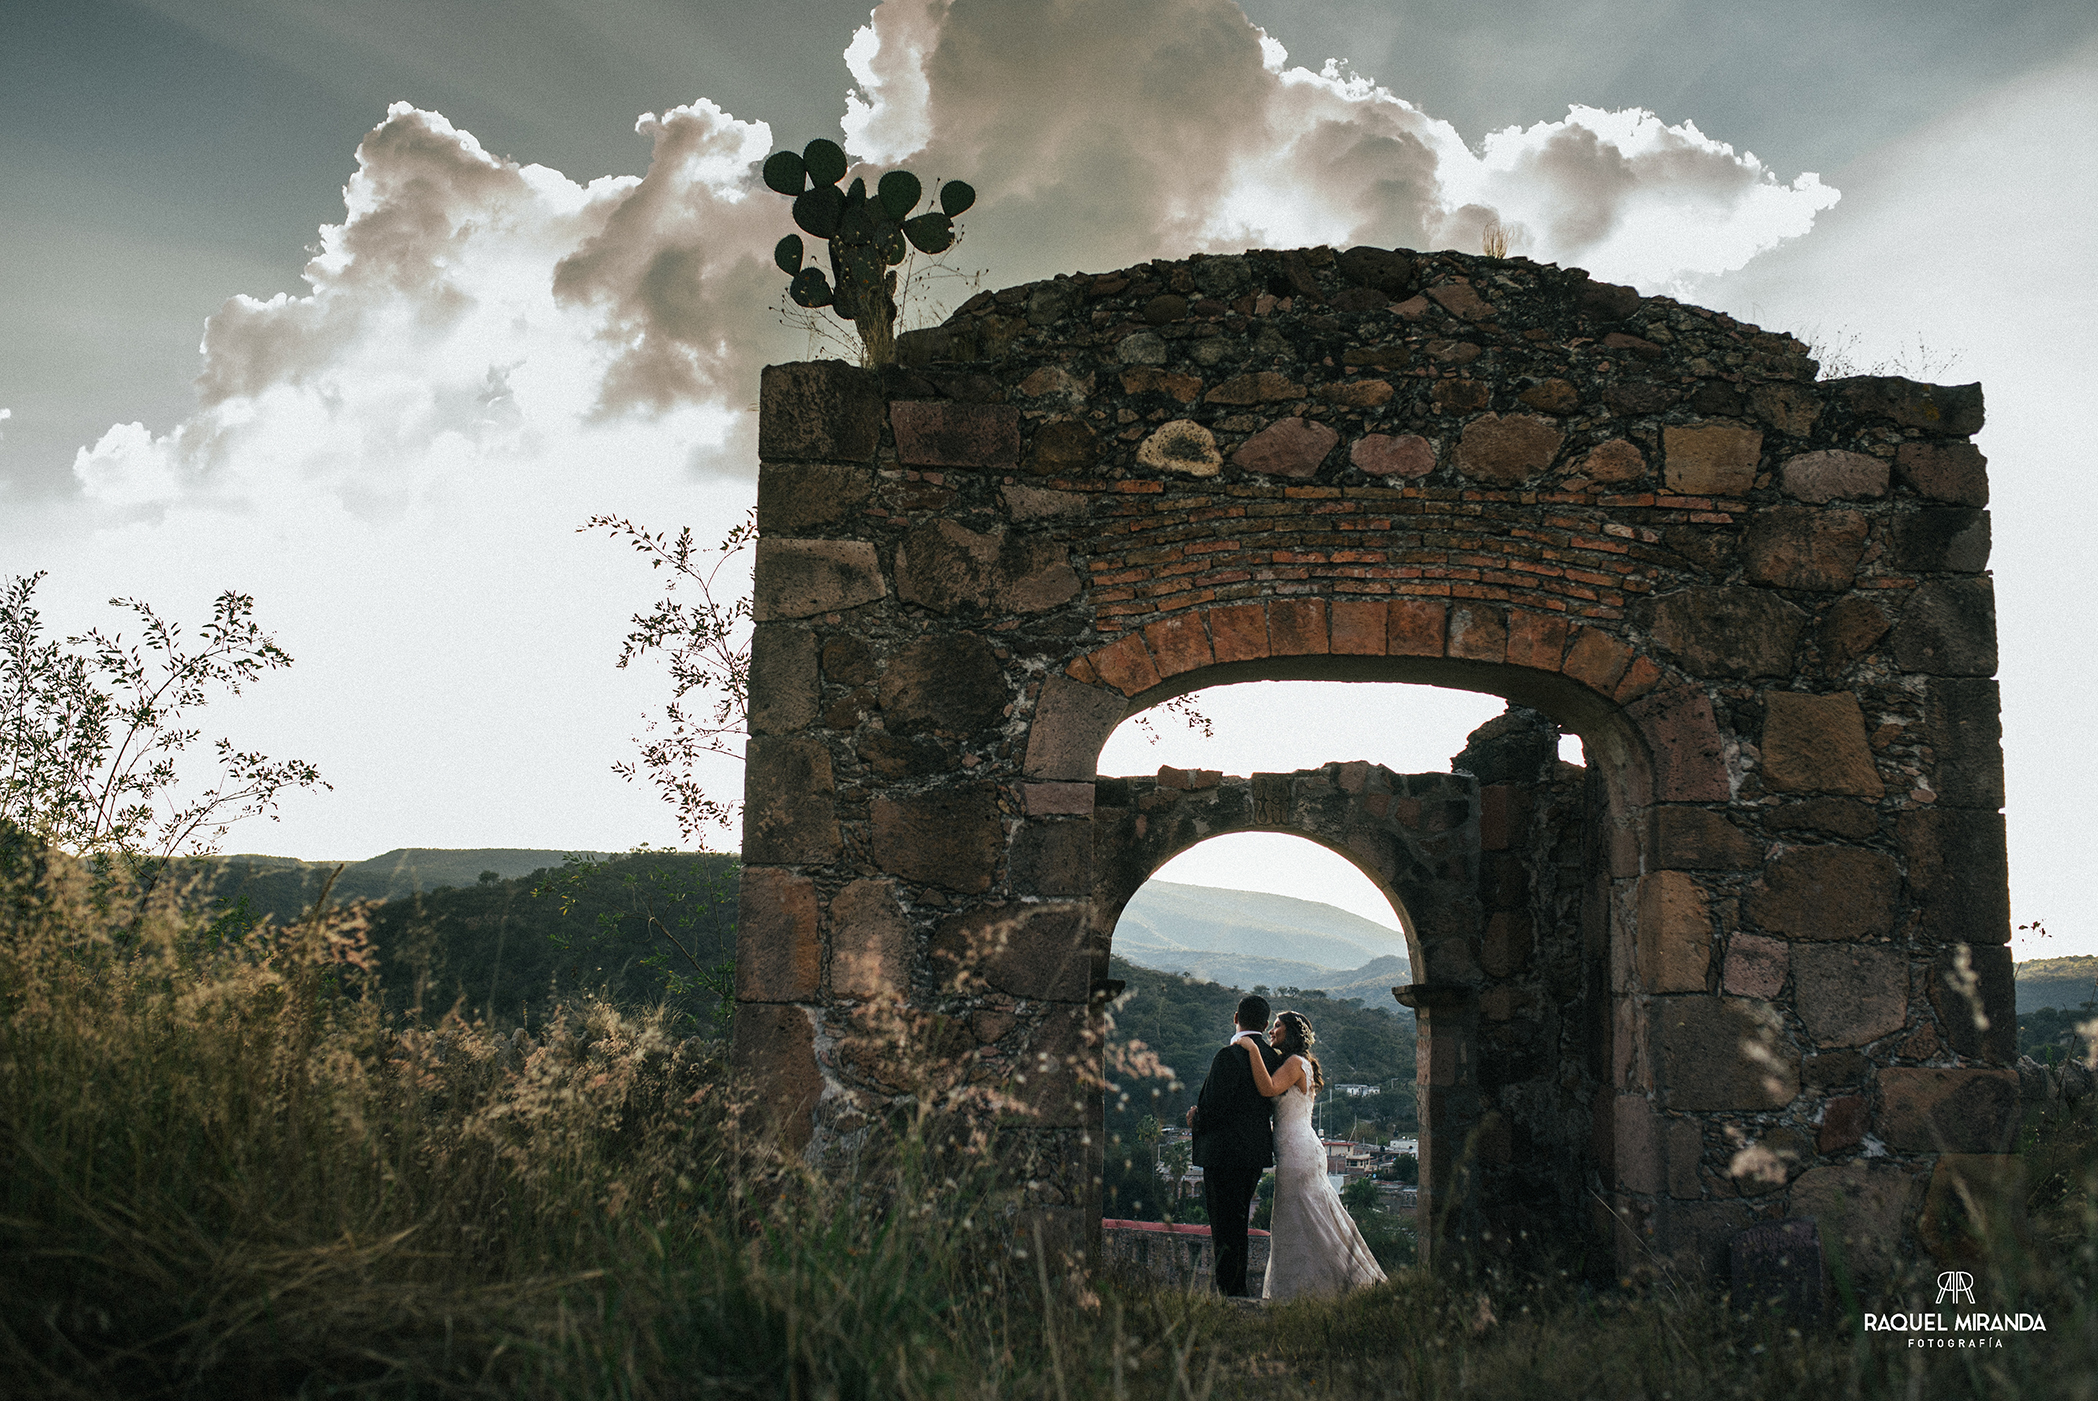 raquel miranda fotografía - trash the dress - nallely&victor-5a.jpg